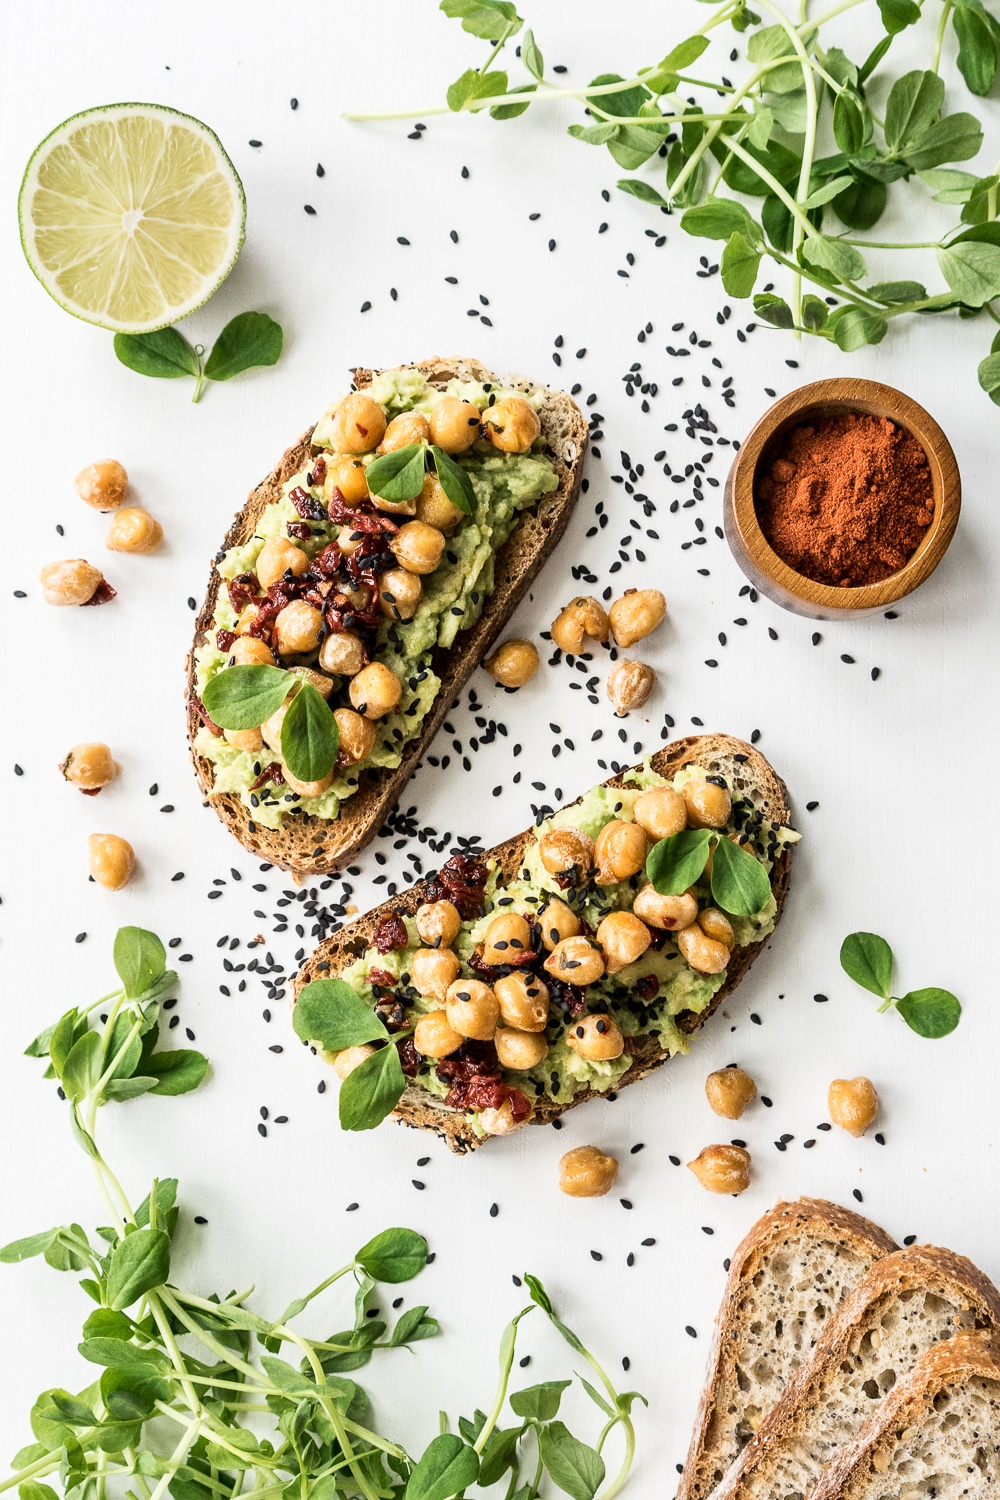 A Healthy Avocado Toast Recipe, the Vegan Way from Gathering Dreams